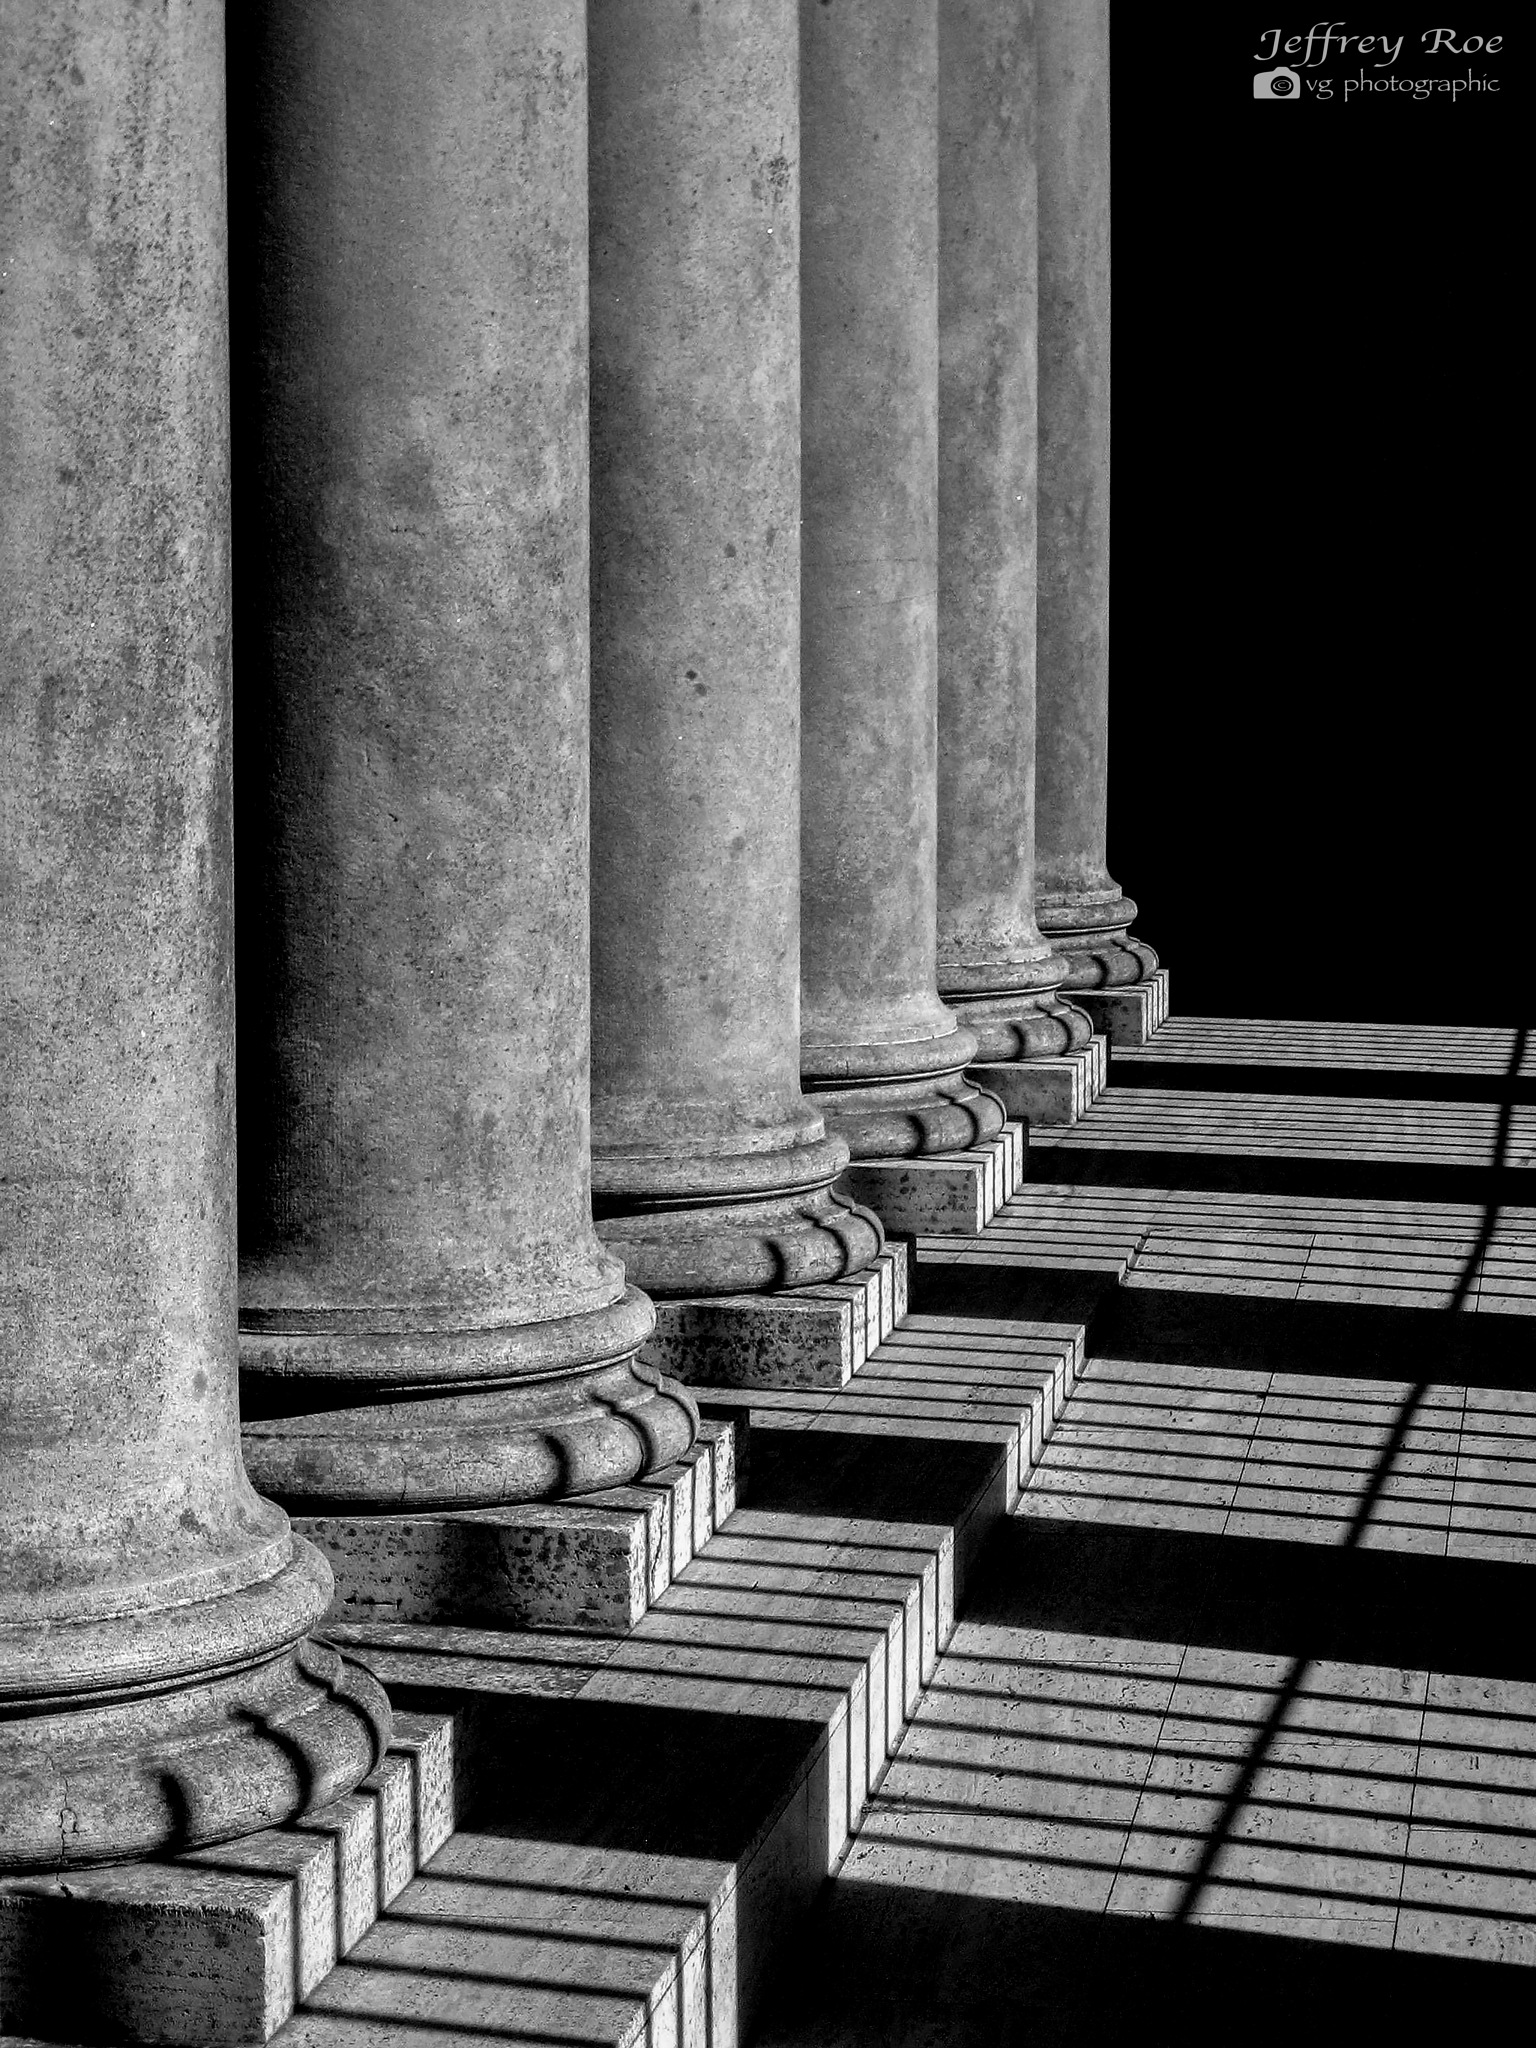 The  Pillars Have Toes by Jeffrey Roe